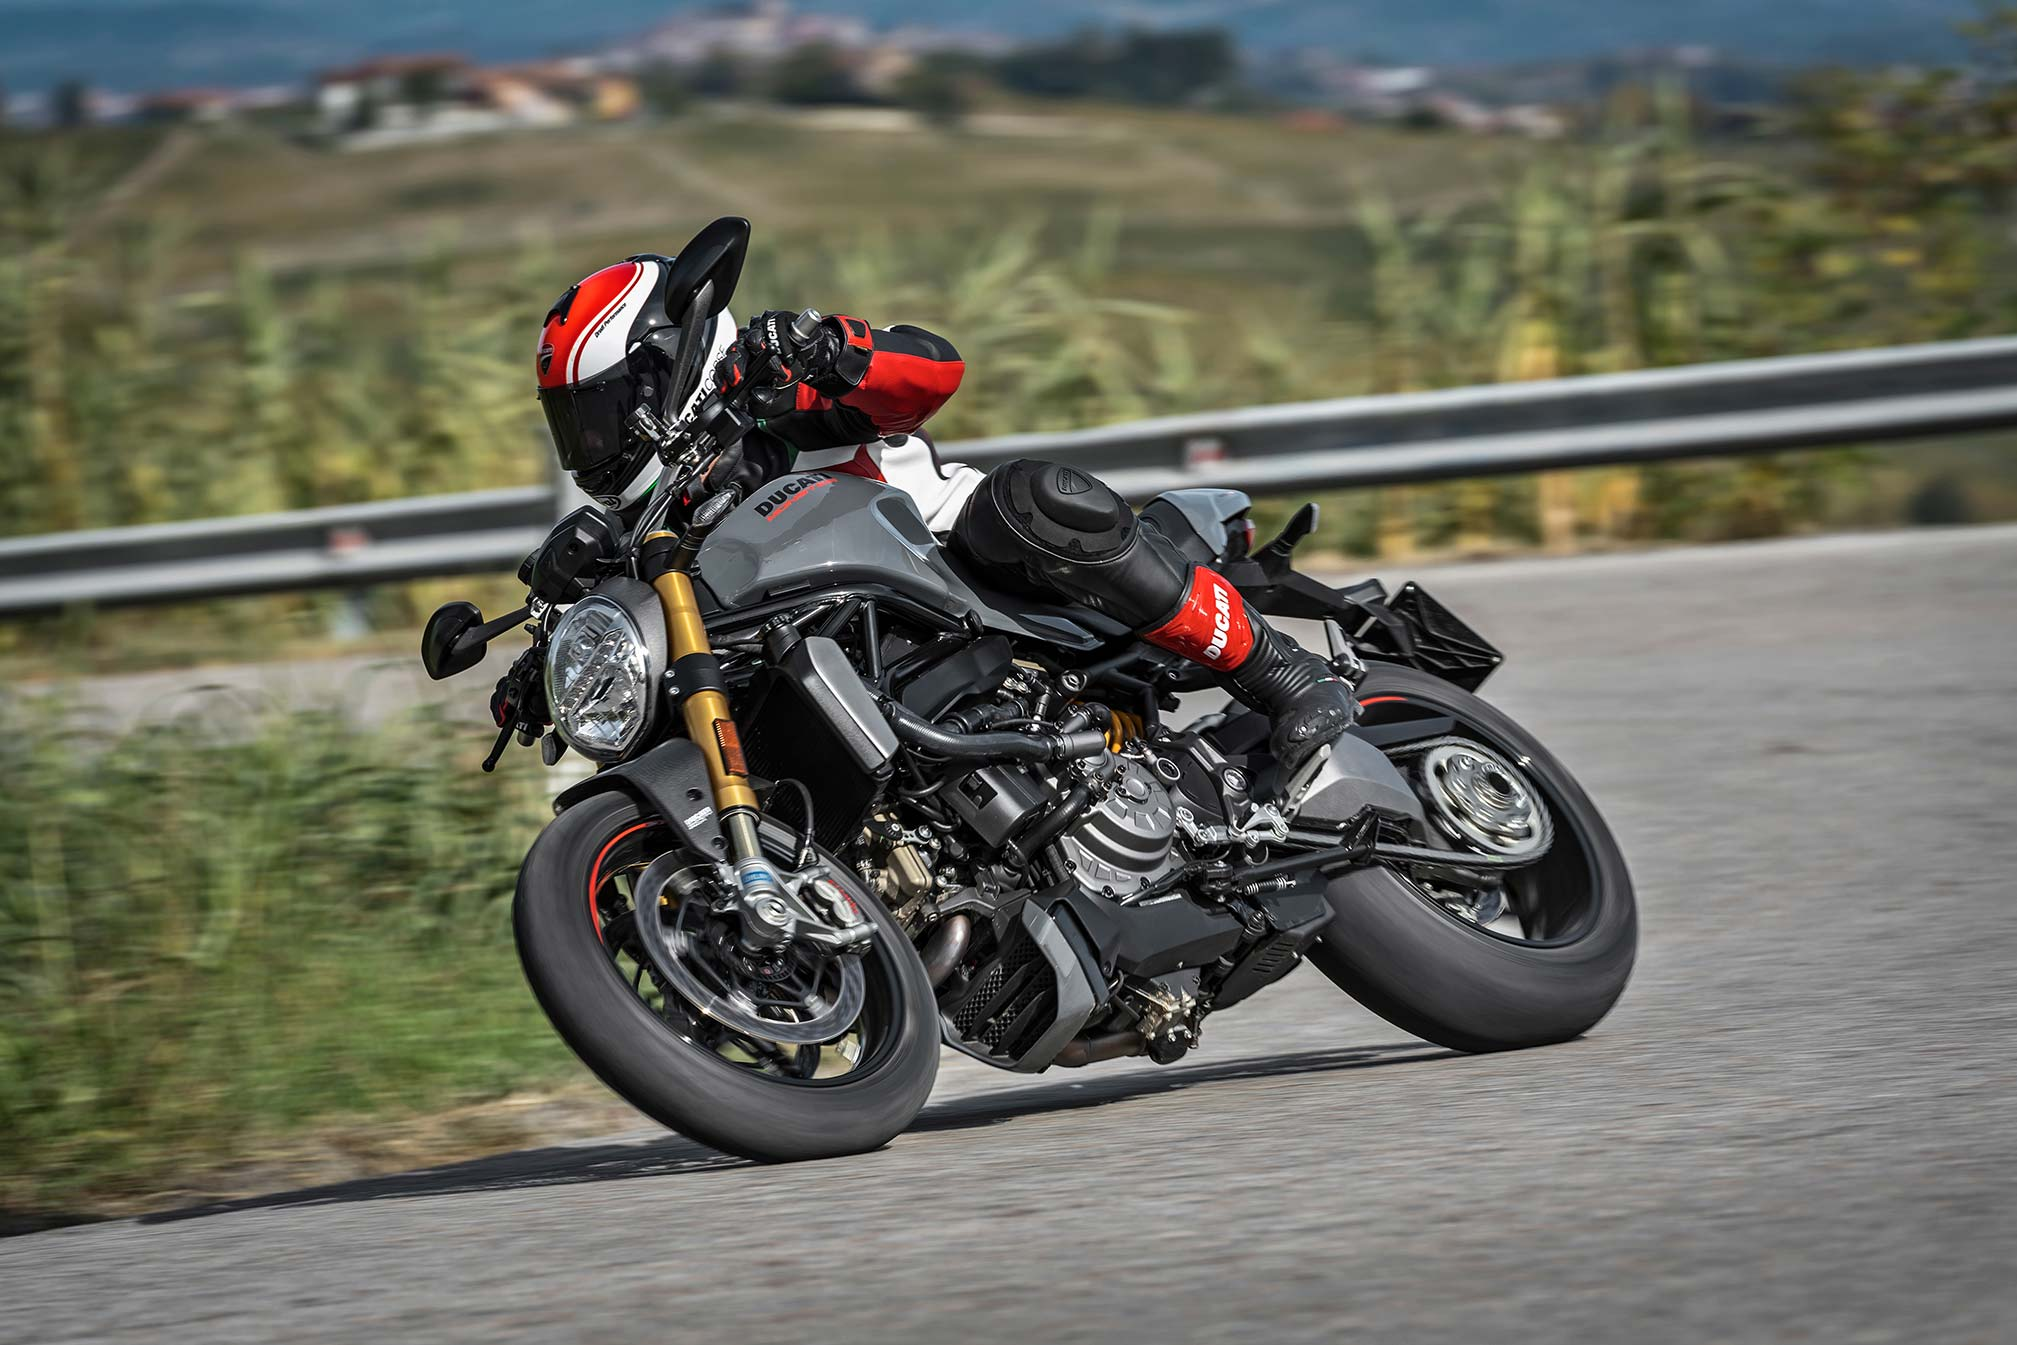 2017 Ducati Monster 1200S Review